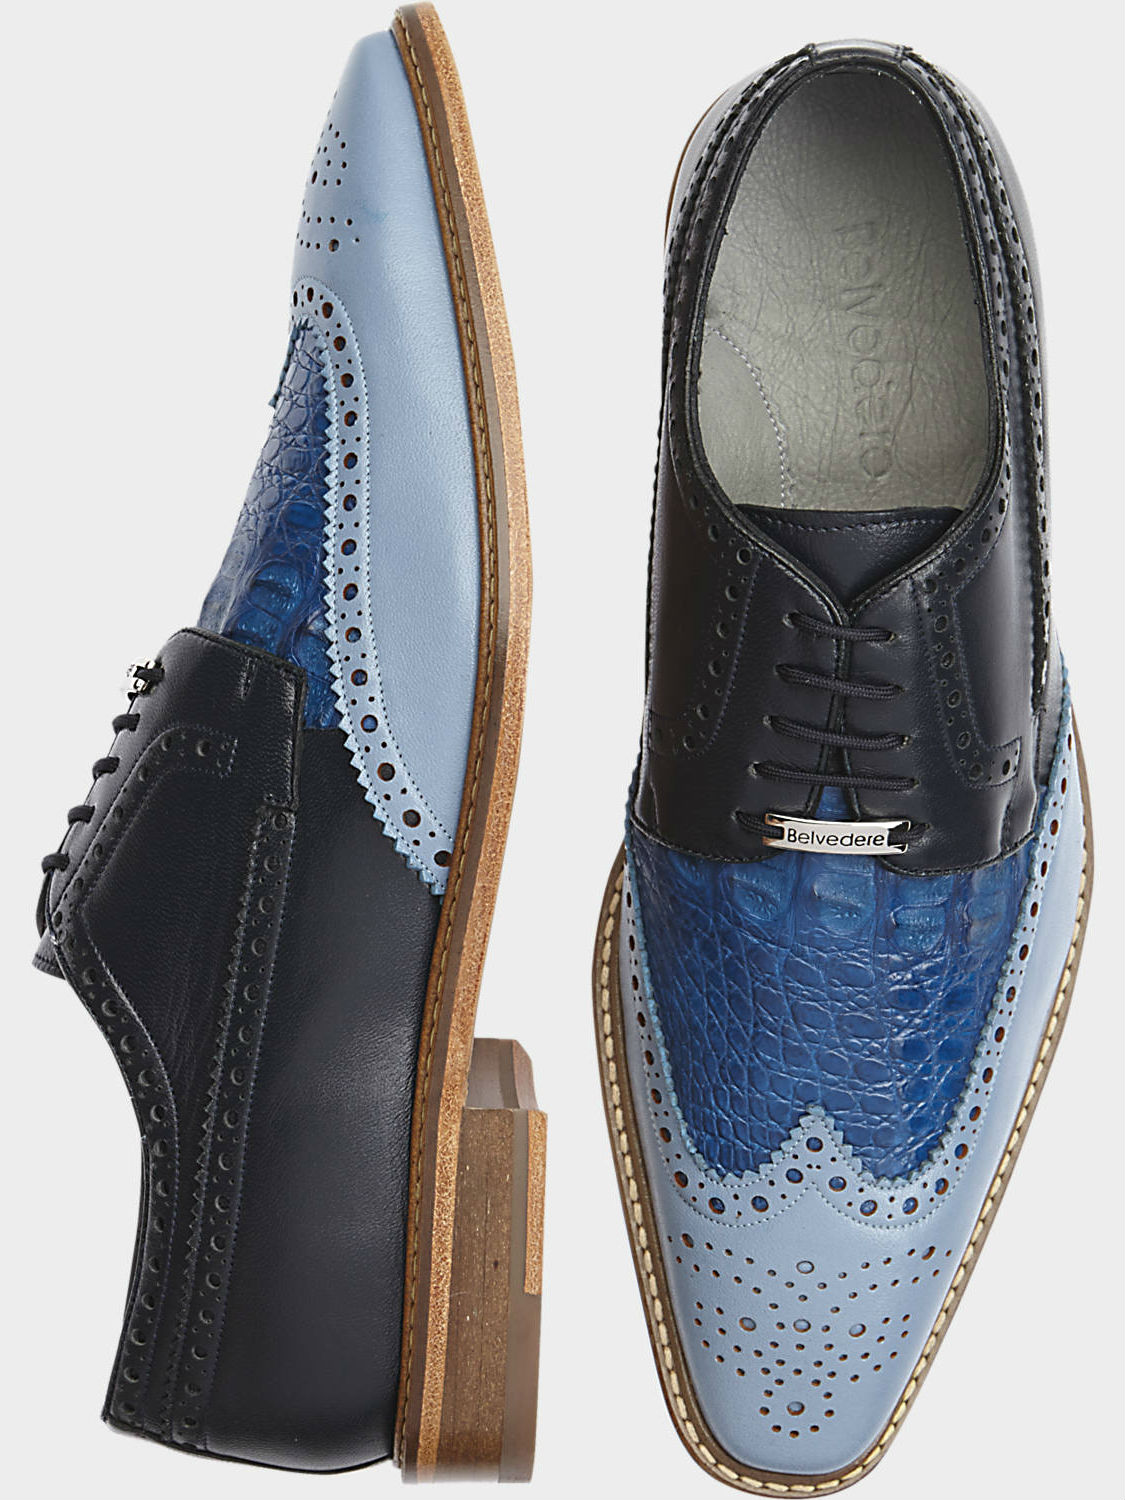 Belvedere Ciro Blue Wingtip Dress Shoes